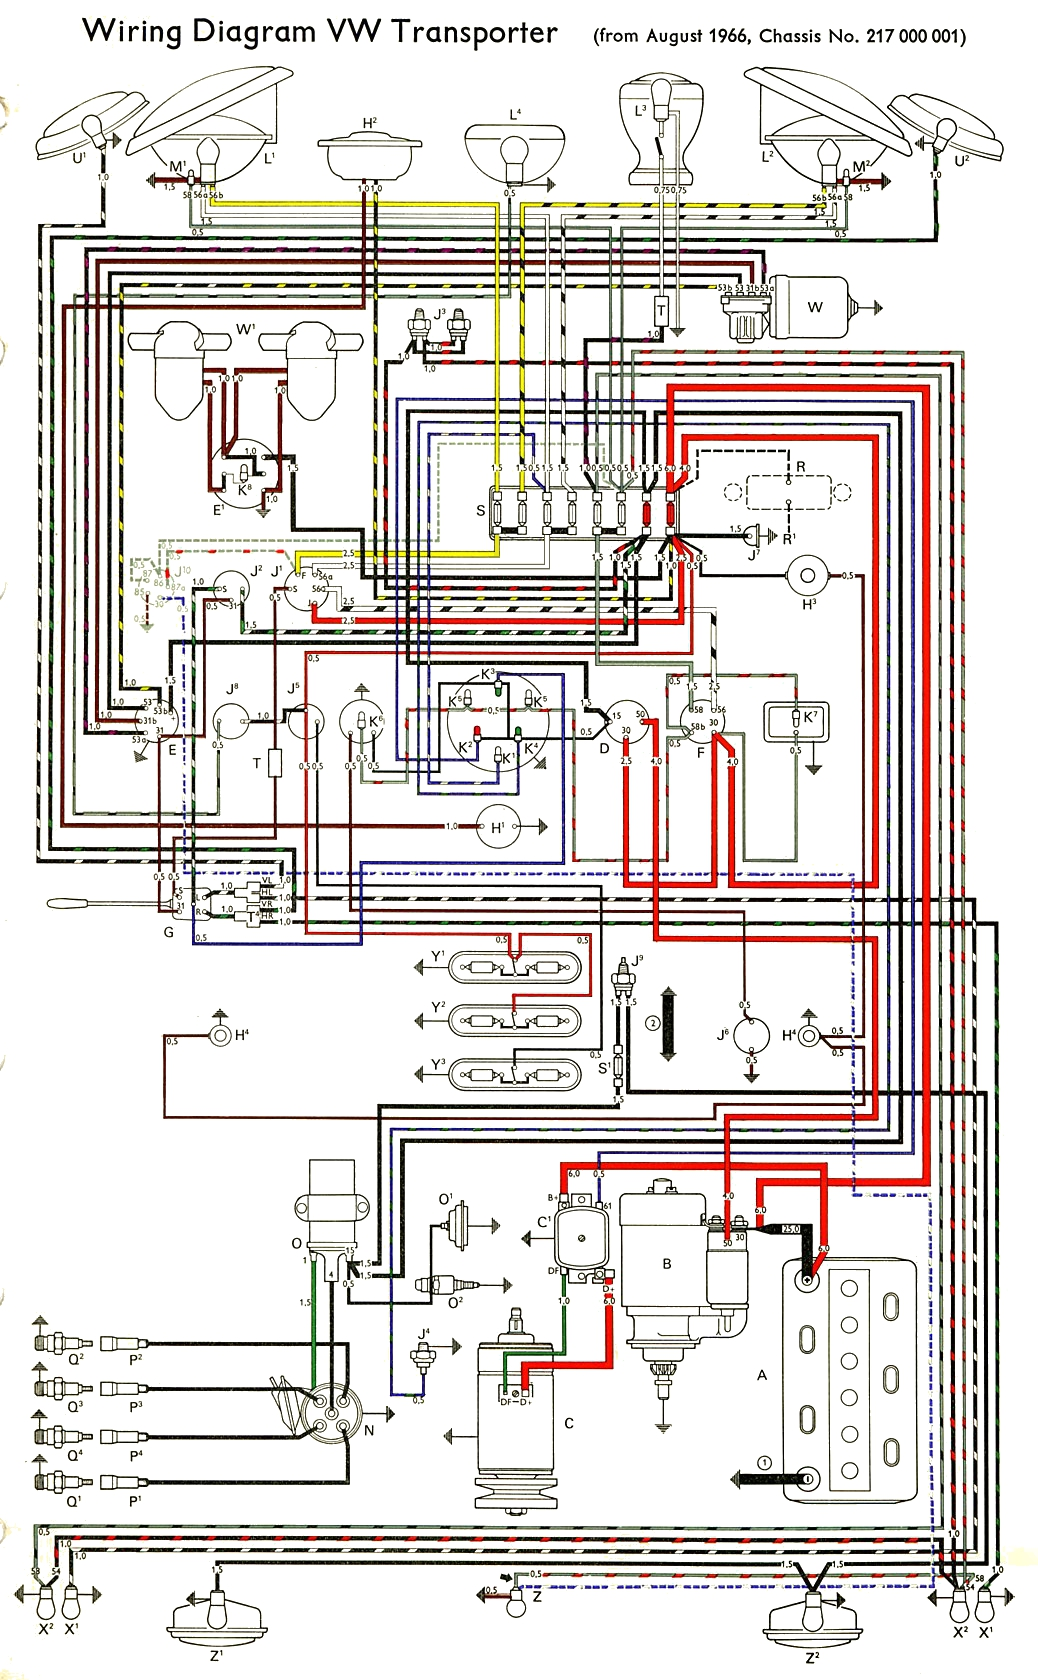 1970 Vw Beetle Ignition Switch Wiring Diagram vw bug turn ... Vw Beetle Indicator Wiring Diagram on vw distributor diagram, 68 vw wiring diagram, alfa romeo spider wiring diagram, vw starter wiring diagram, fiat uno wiring diagram, vw buggy wiring-diagram, volkswagen fuel diagram, 1967 vw wiring diagram, 1974 vw engine diagram, vw turn signal wiring diagram, vw light switch wiring, type 3 wiring diagram, 1973 vw wiring diagram, vw beetle engine diagram, vw beetle fuel injection diagram, 1963 vw wiring diagram, vw rabbit wiring-diagram, porsche cayenne wiring diagram, vw type 2 wiring diagram, 1999 vw passat wiring diagram,